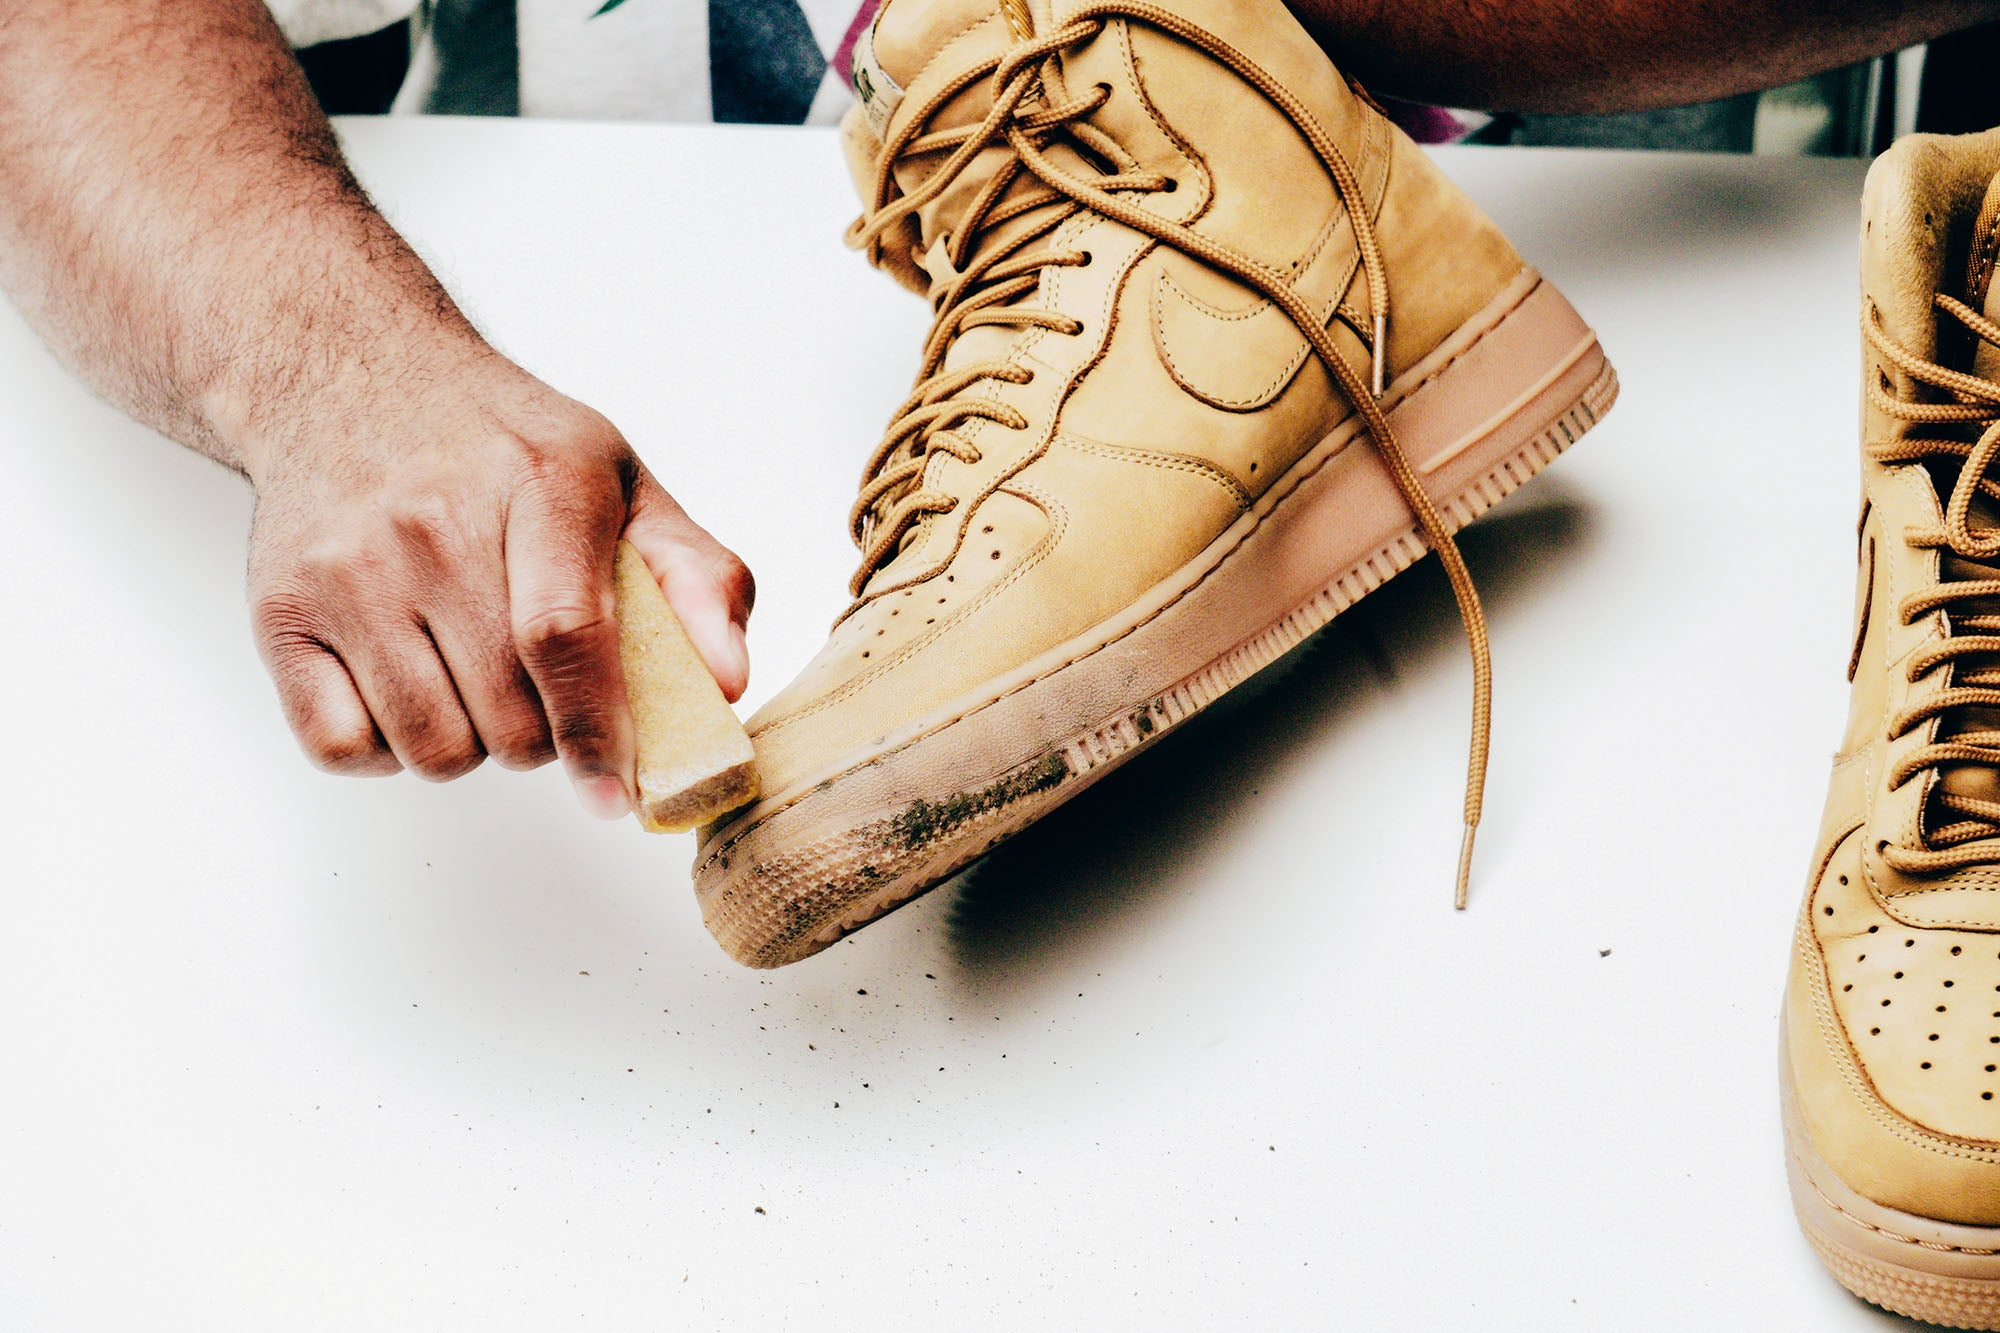 Jason Markk Sneaker Care 101 How to clean Nubuck shoes step 2